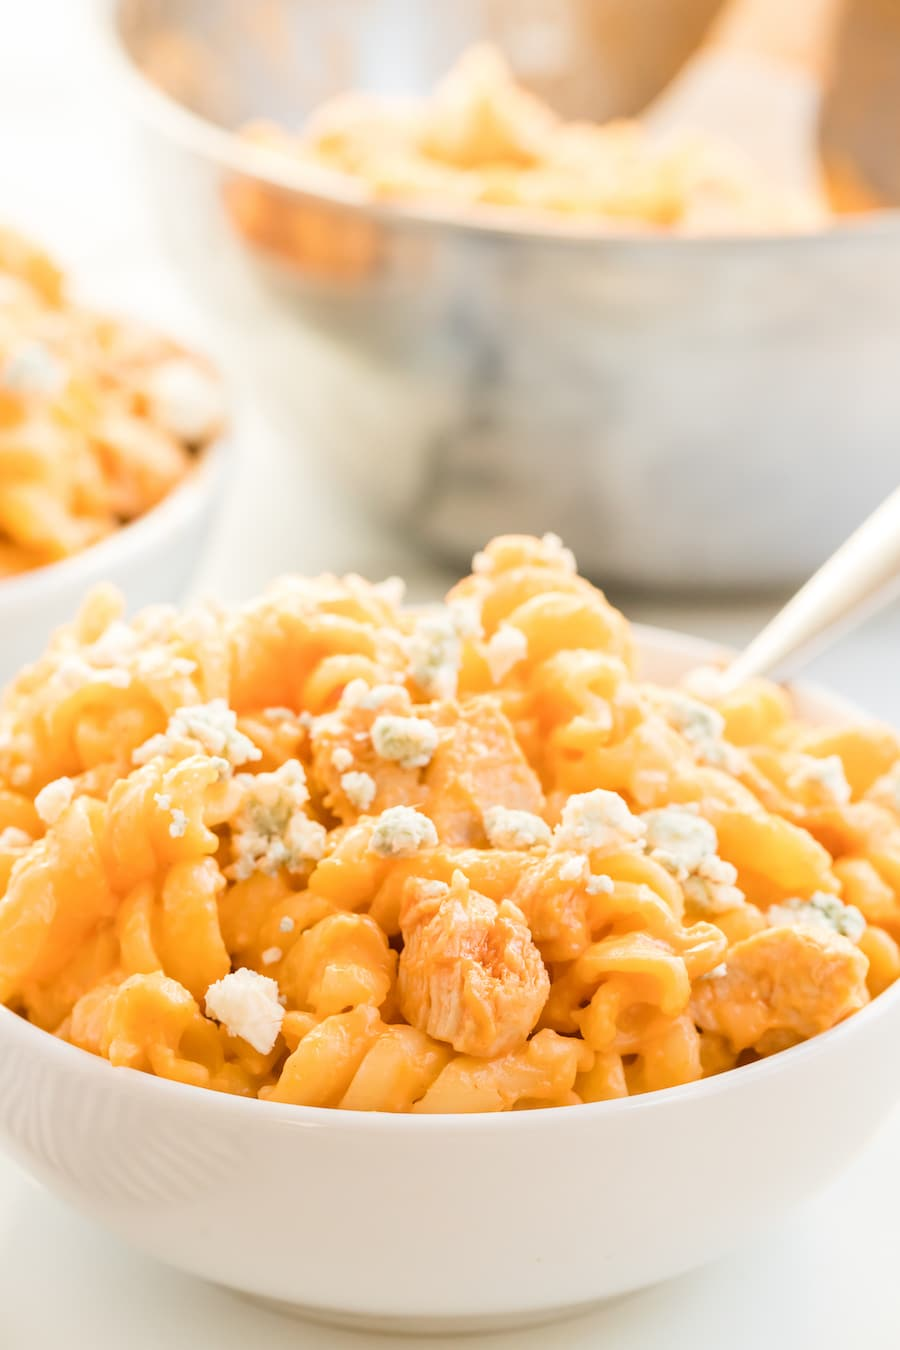 Macaroni and cheese with buffalo chicken and blue cheese crumbles